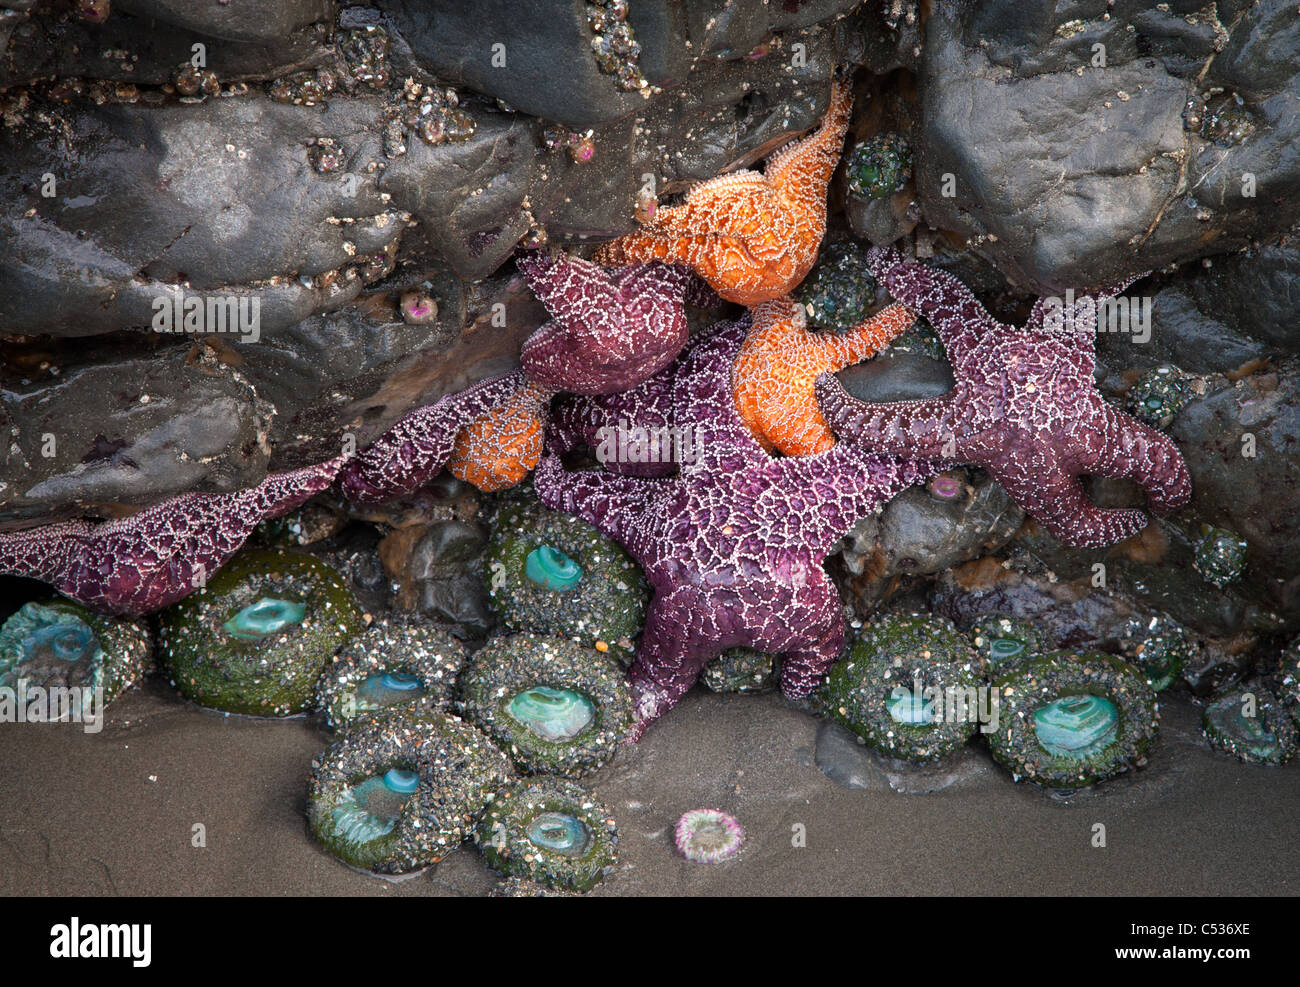 ochre star (Pisaster ochraceus) and green sea anemone, Ruby Beach, Olympic National Park, Washington - Stock Image